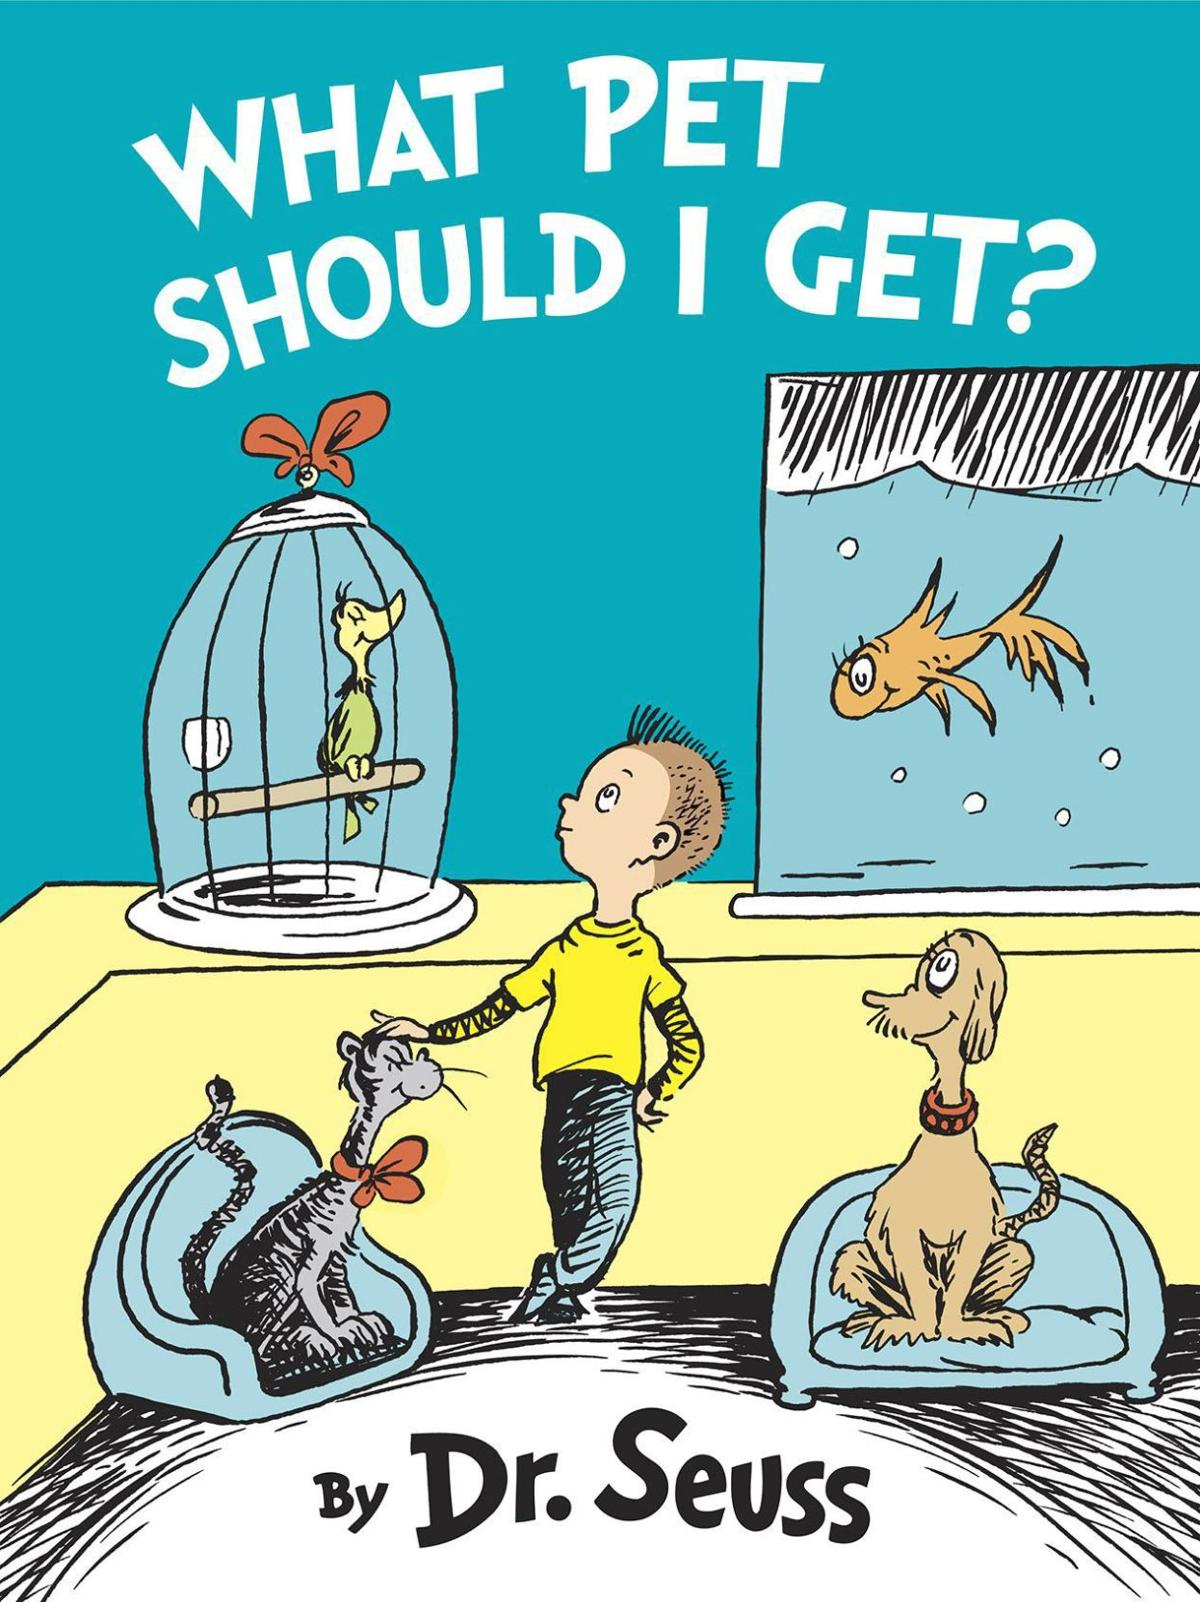 More to deduce from Dr. Seuss